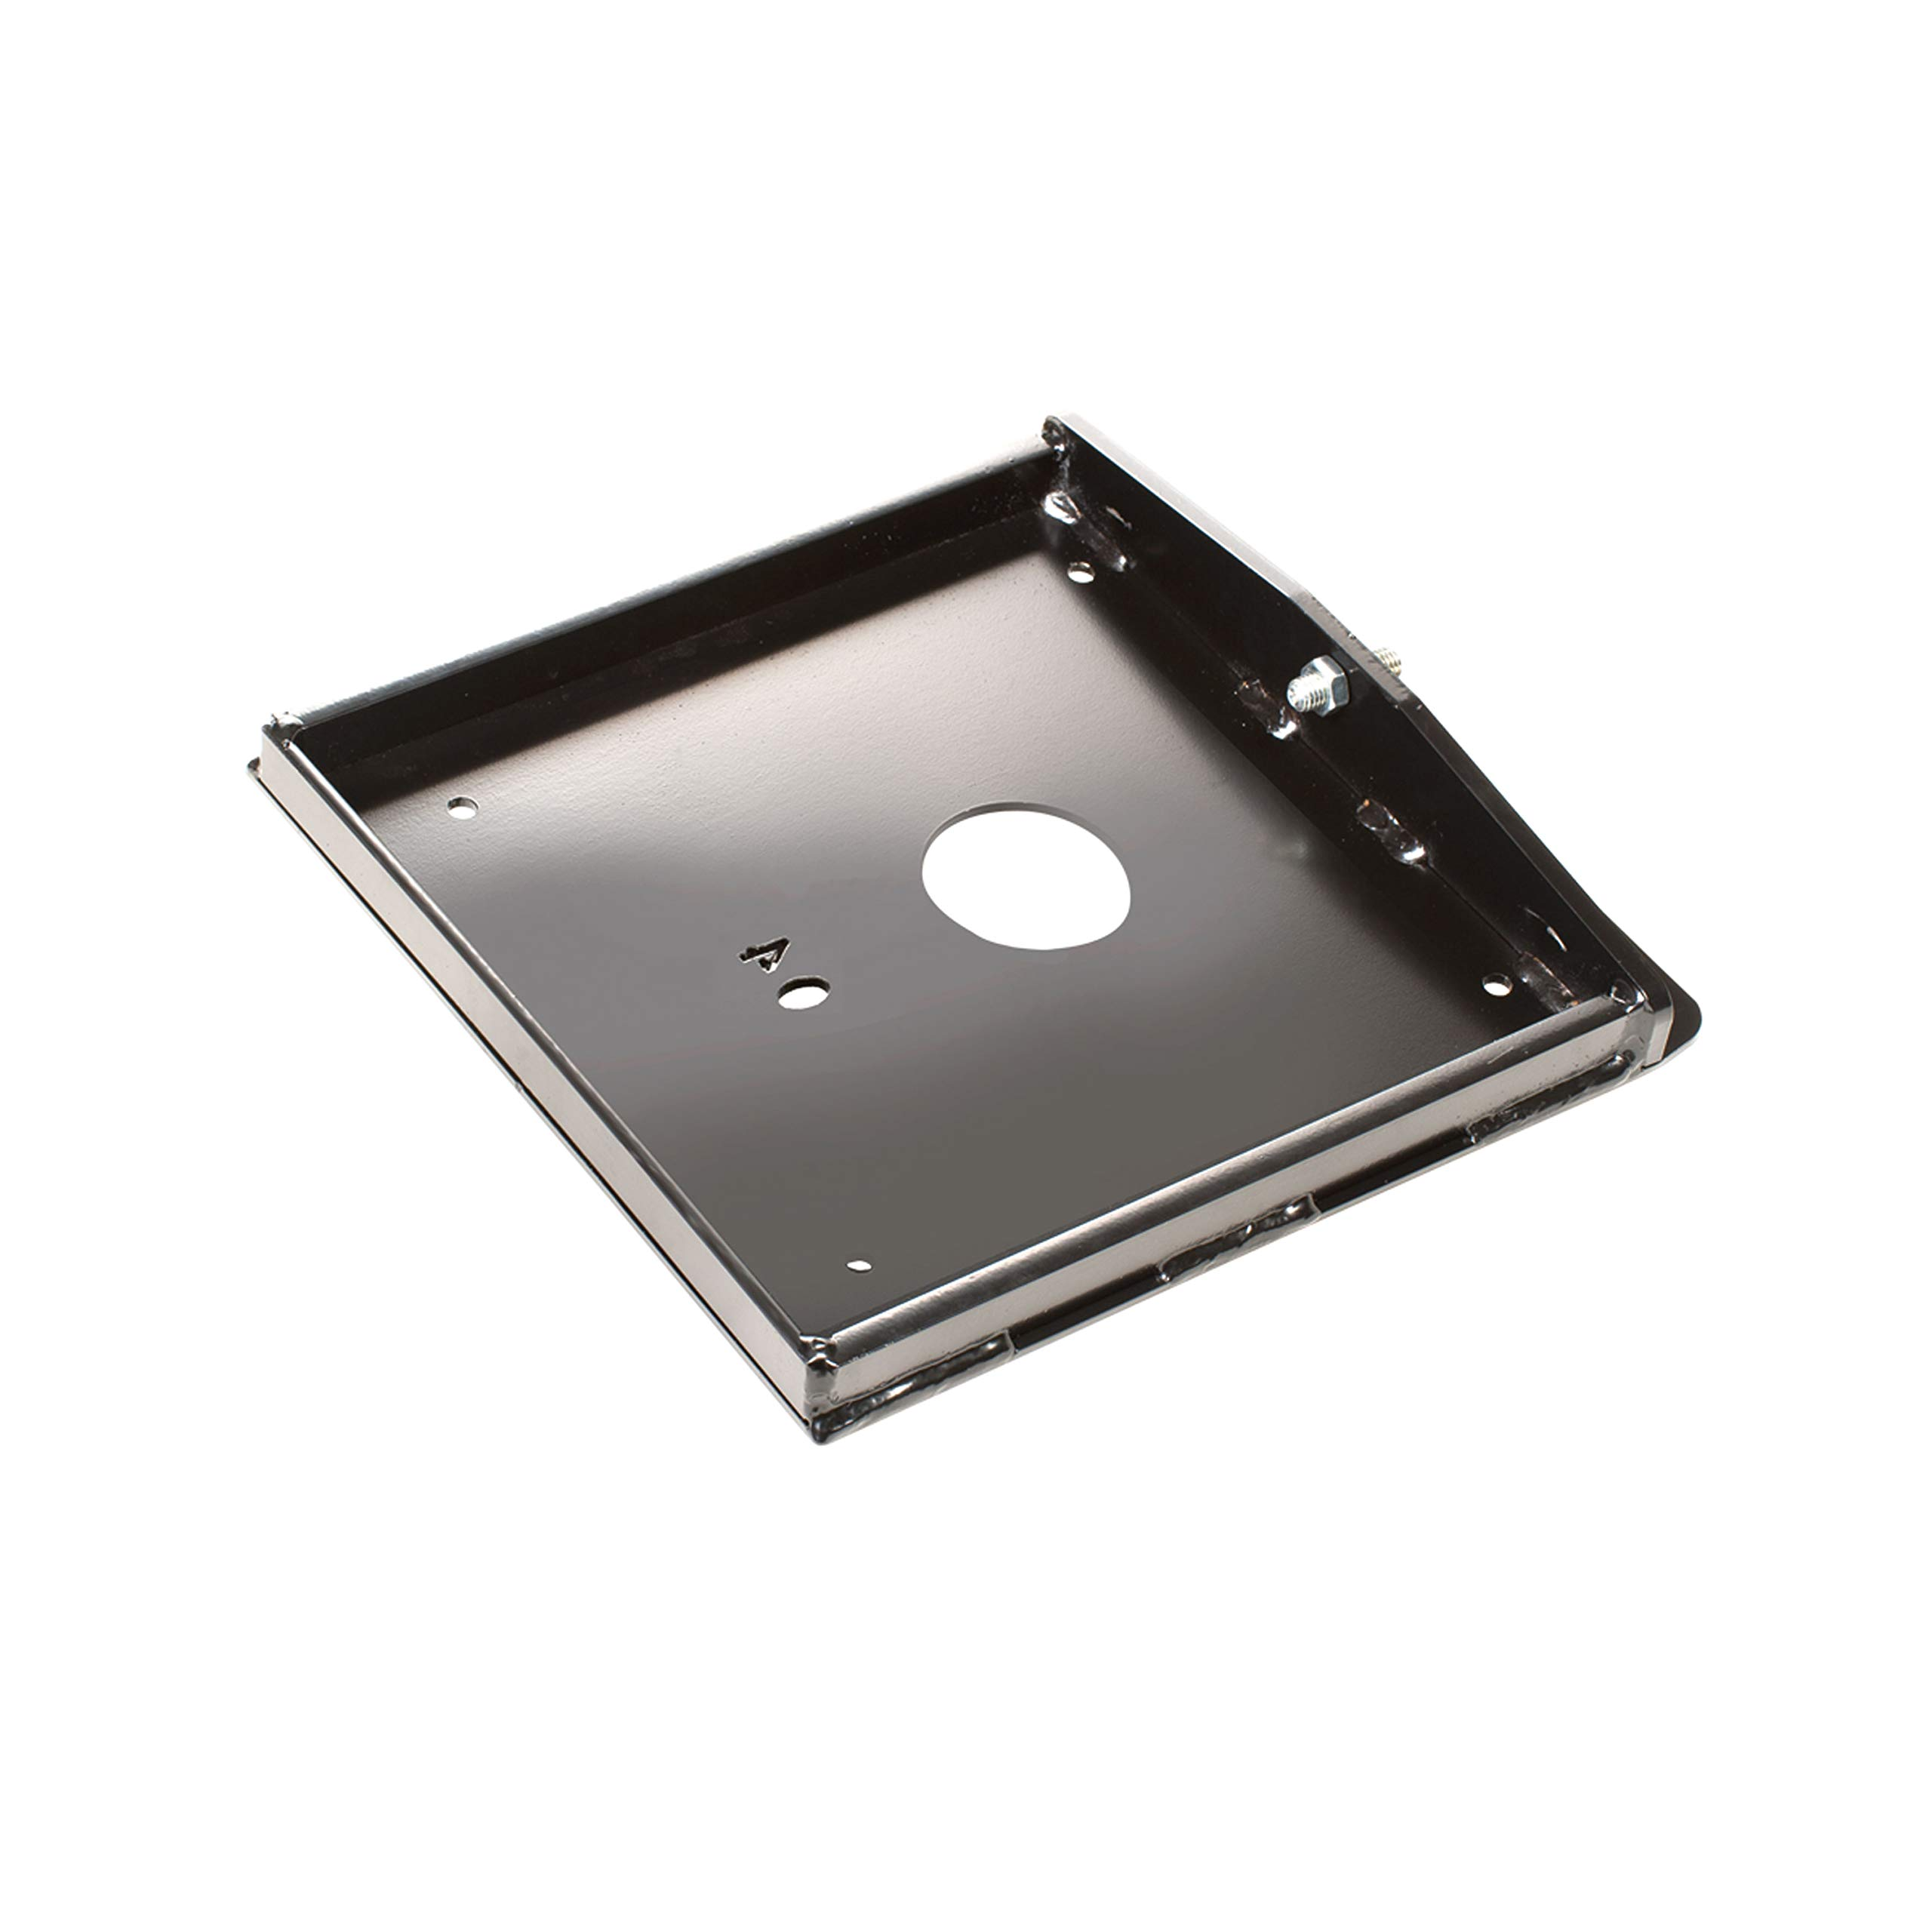 PullRite Pulliam Enterprises, 331704 Capture Plate Lippert 1621 by PullRite